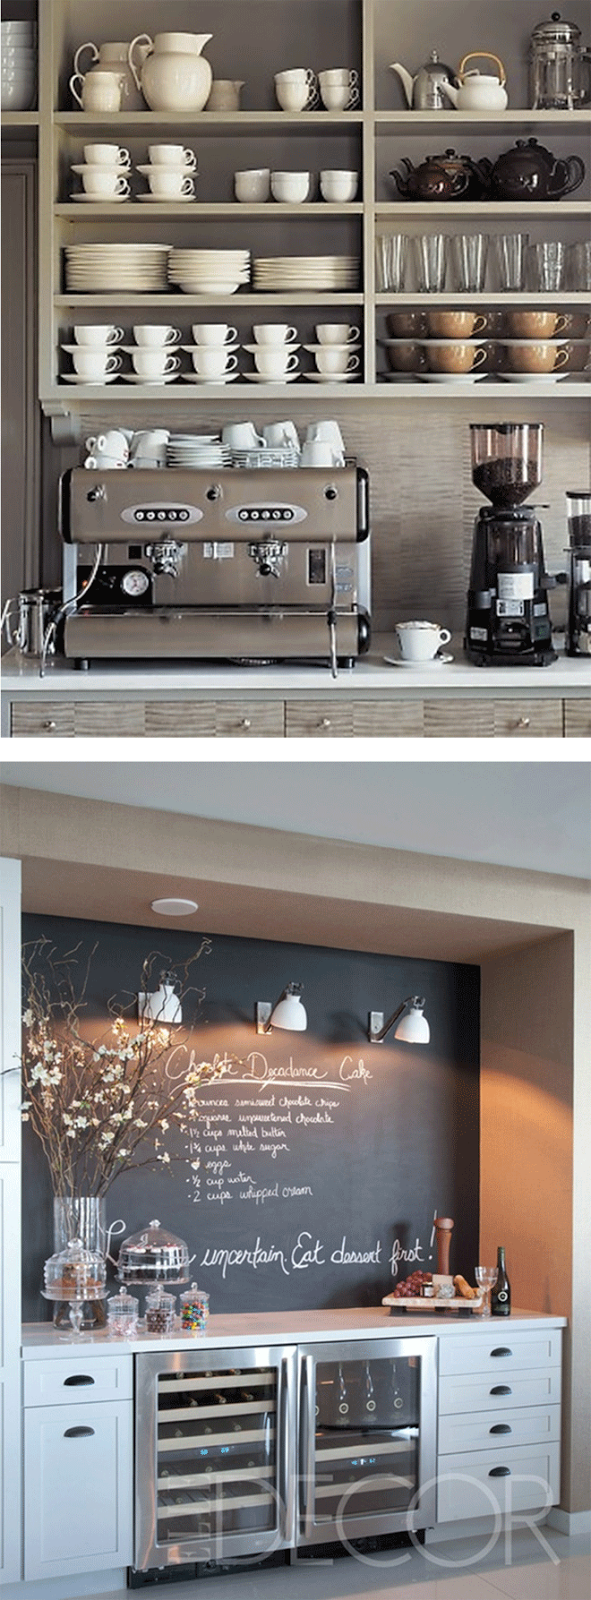 Some day I truly want a commercial espresso machine and